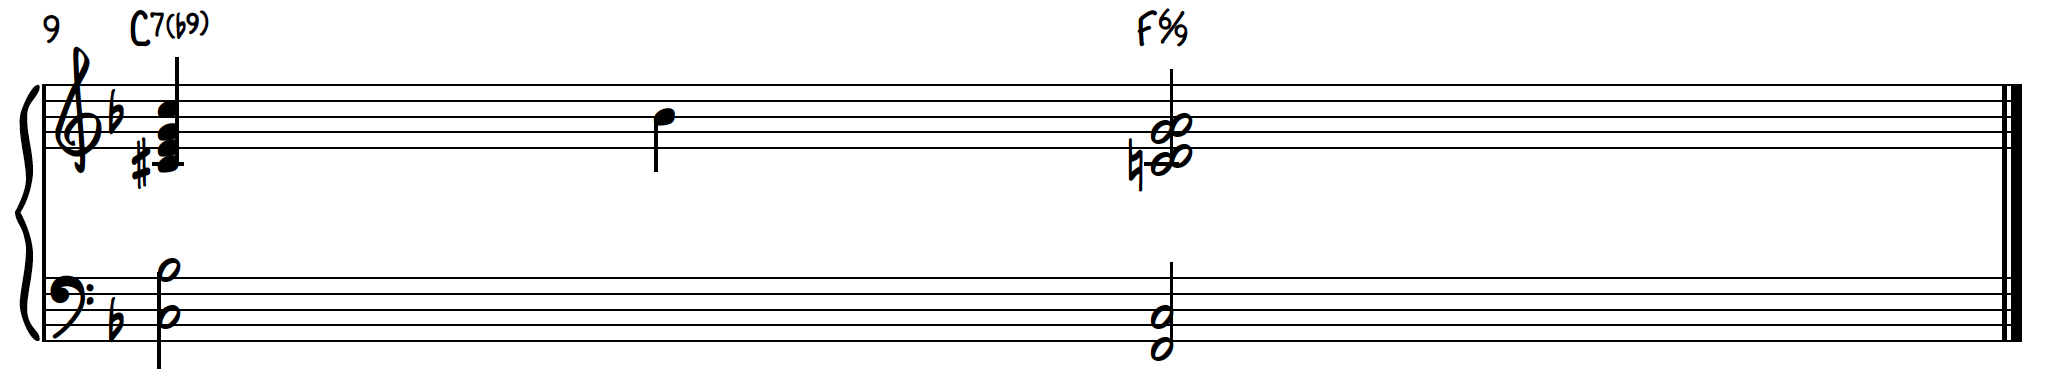 How to use Dissonant Chord 3 in a jazz piano progression